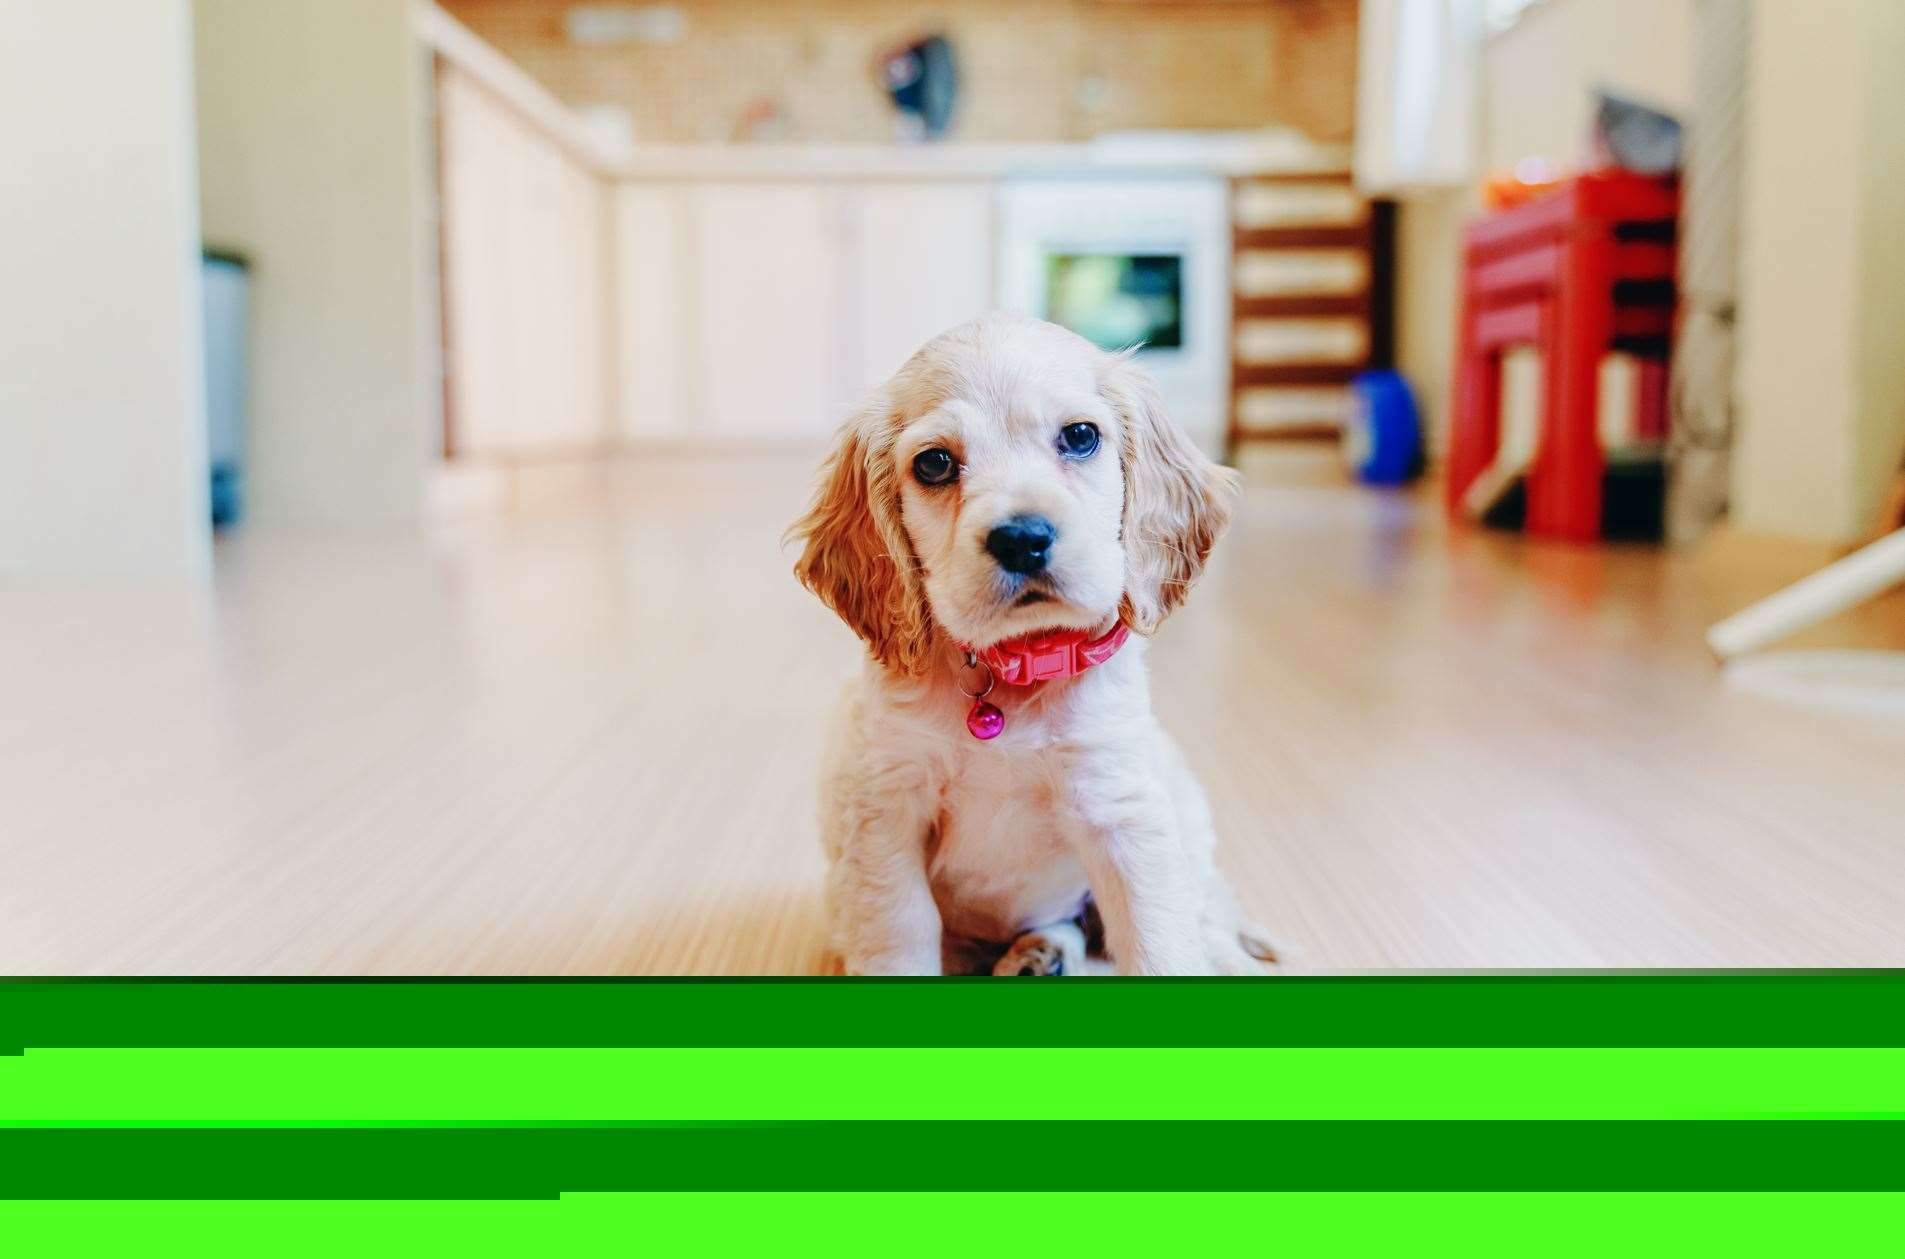 Changes in people's lifestyles over the past 18 months have encouraged more households to buy pets